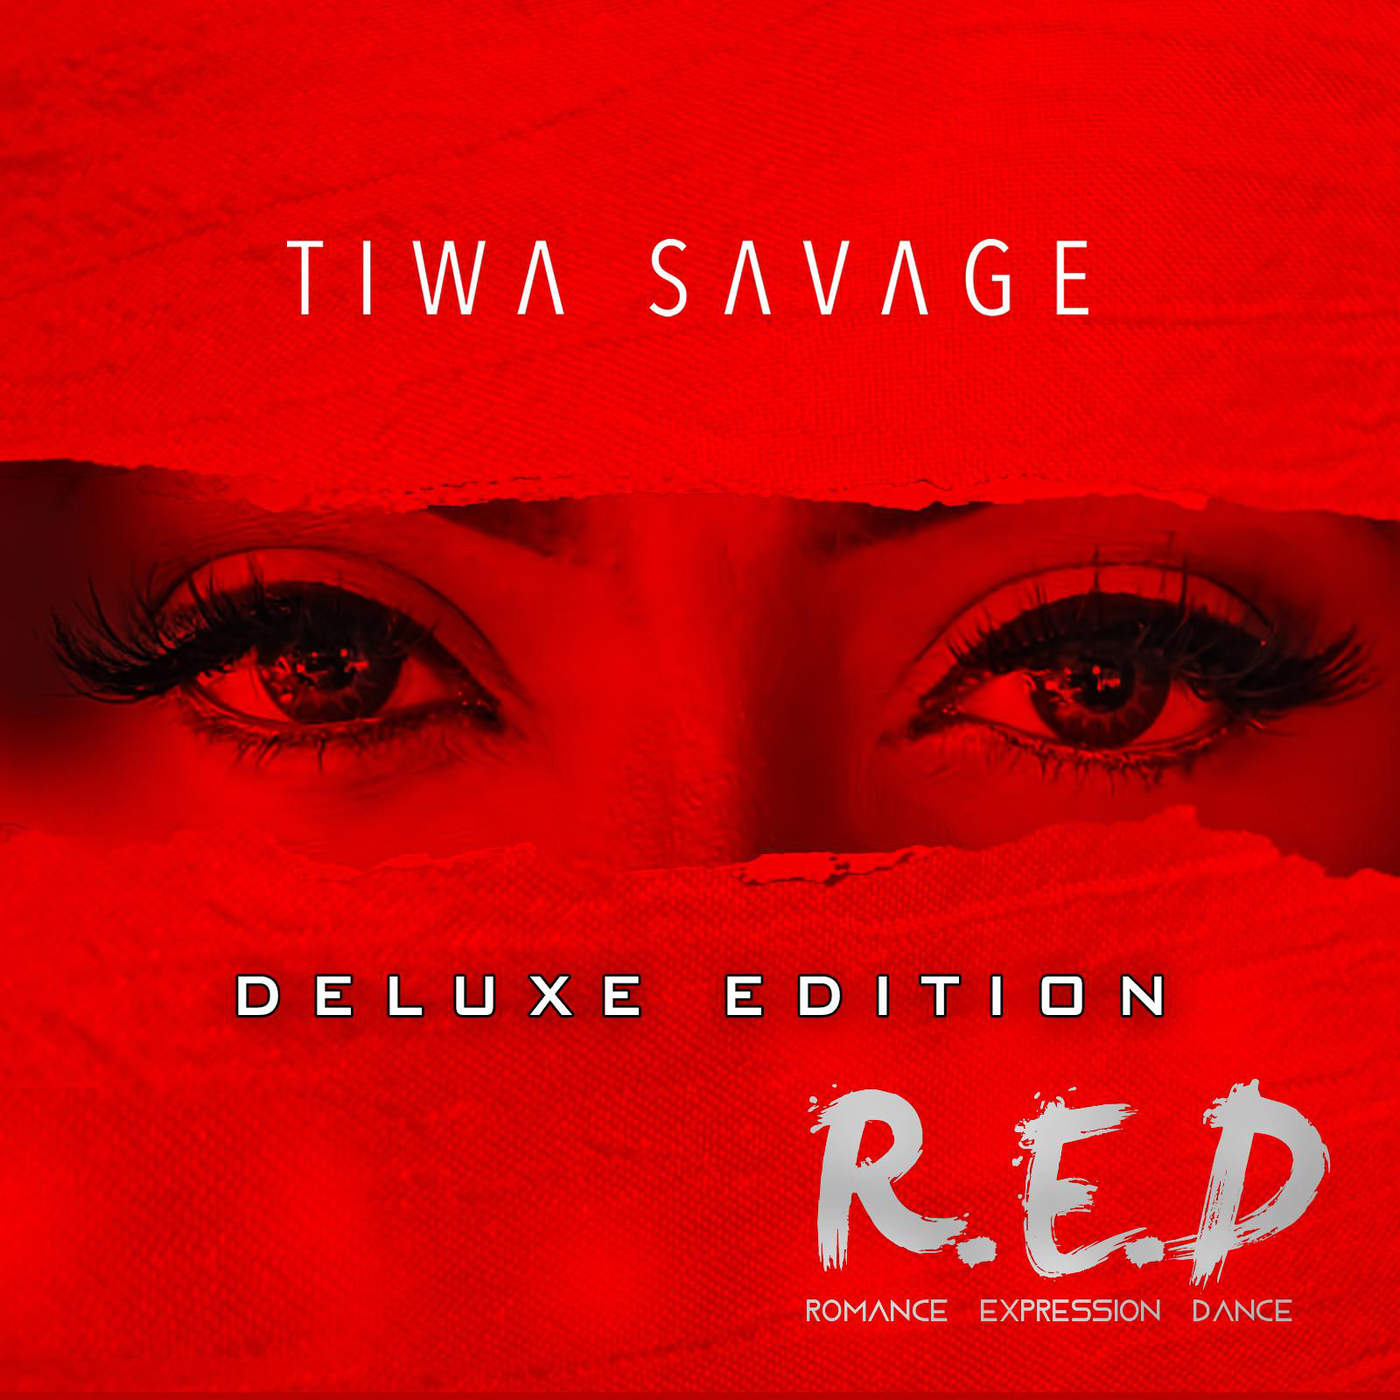 Tiwa Savage R.E.D Deluxe Edition